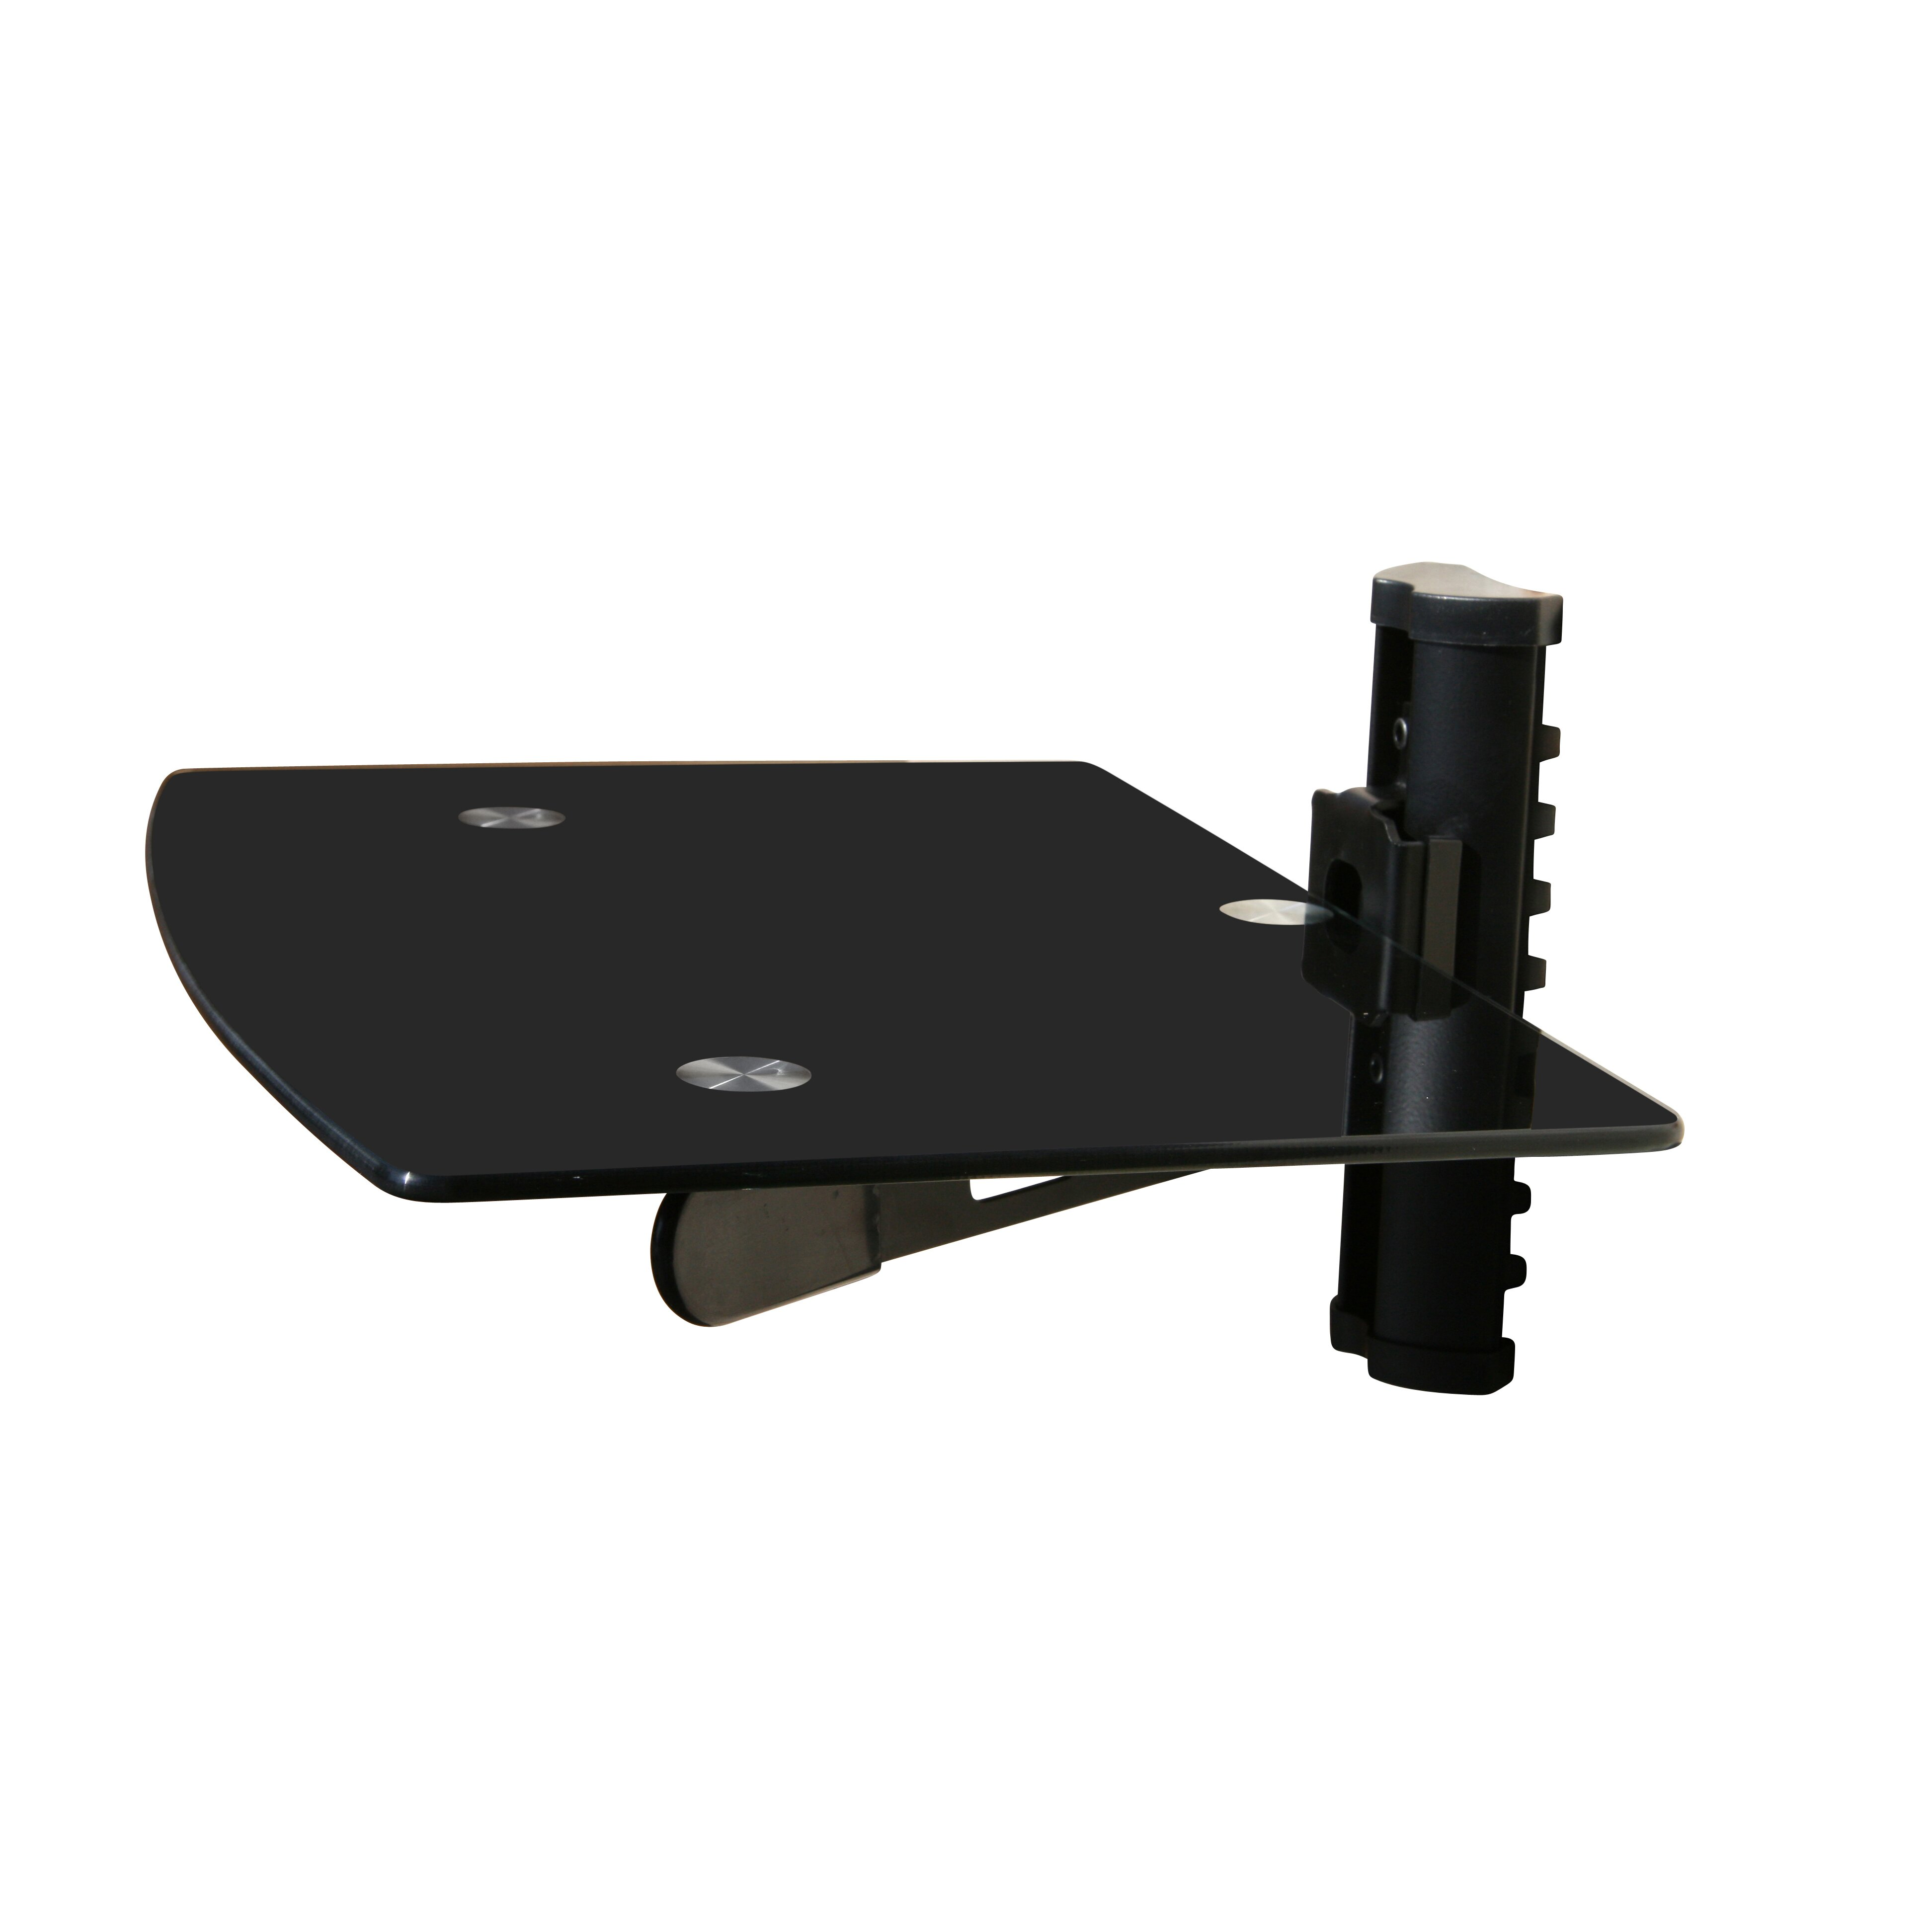 mount it wall mounted tv and component shelf combo dvd dvr vcr wall mount bracket reviews. Black Bedroom Furniture Sets. Home Design Ideas